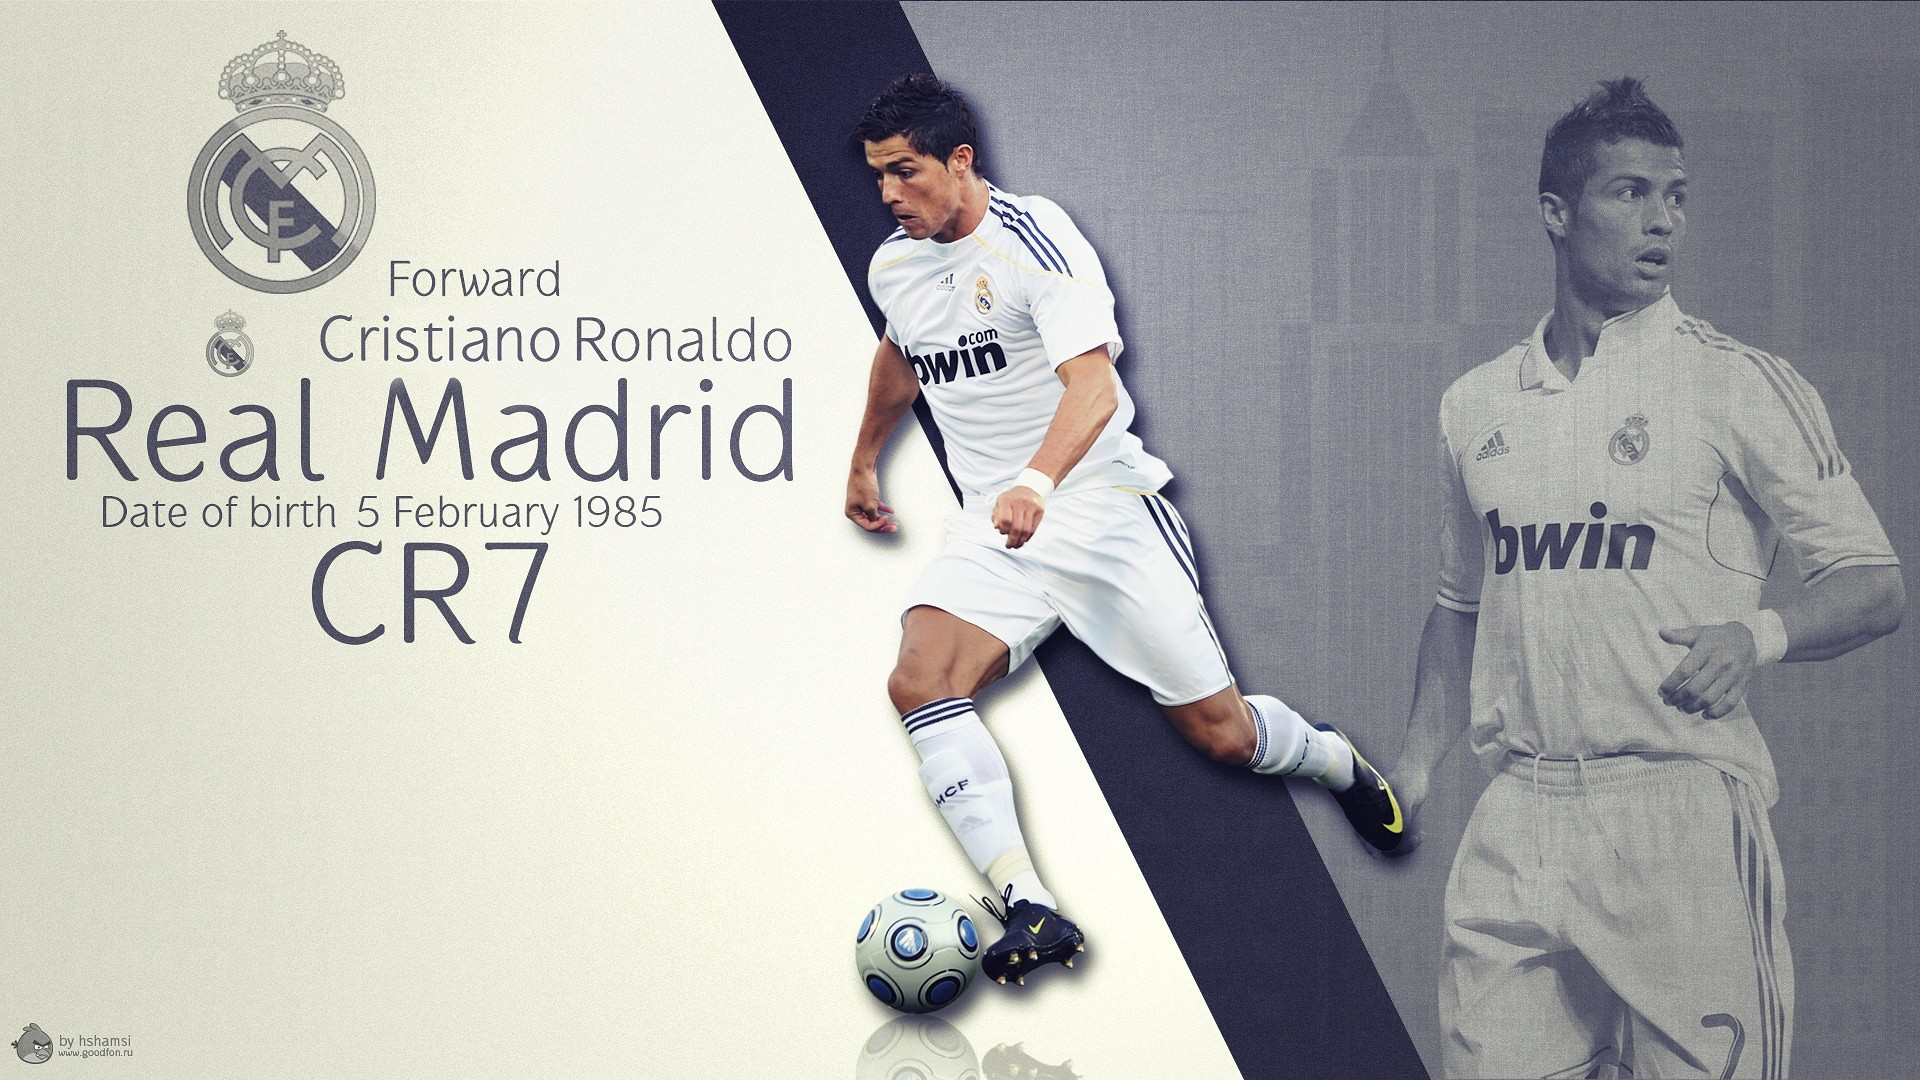 1920x1080 ... Cristiano Ronaldo Real Madrid 2015 Wallpaper 8 ...